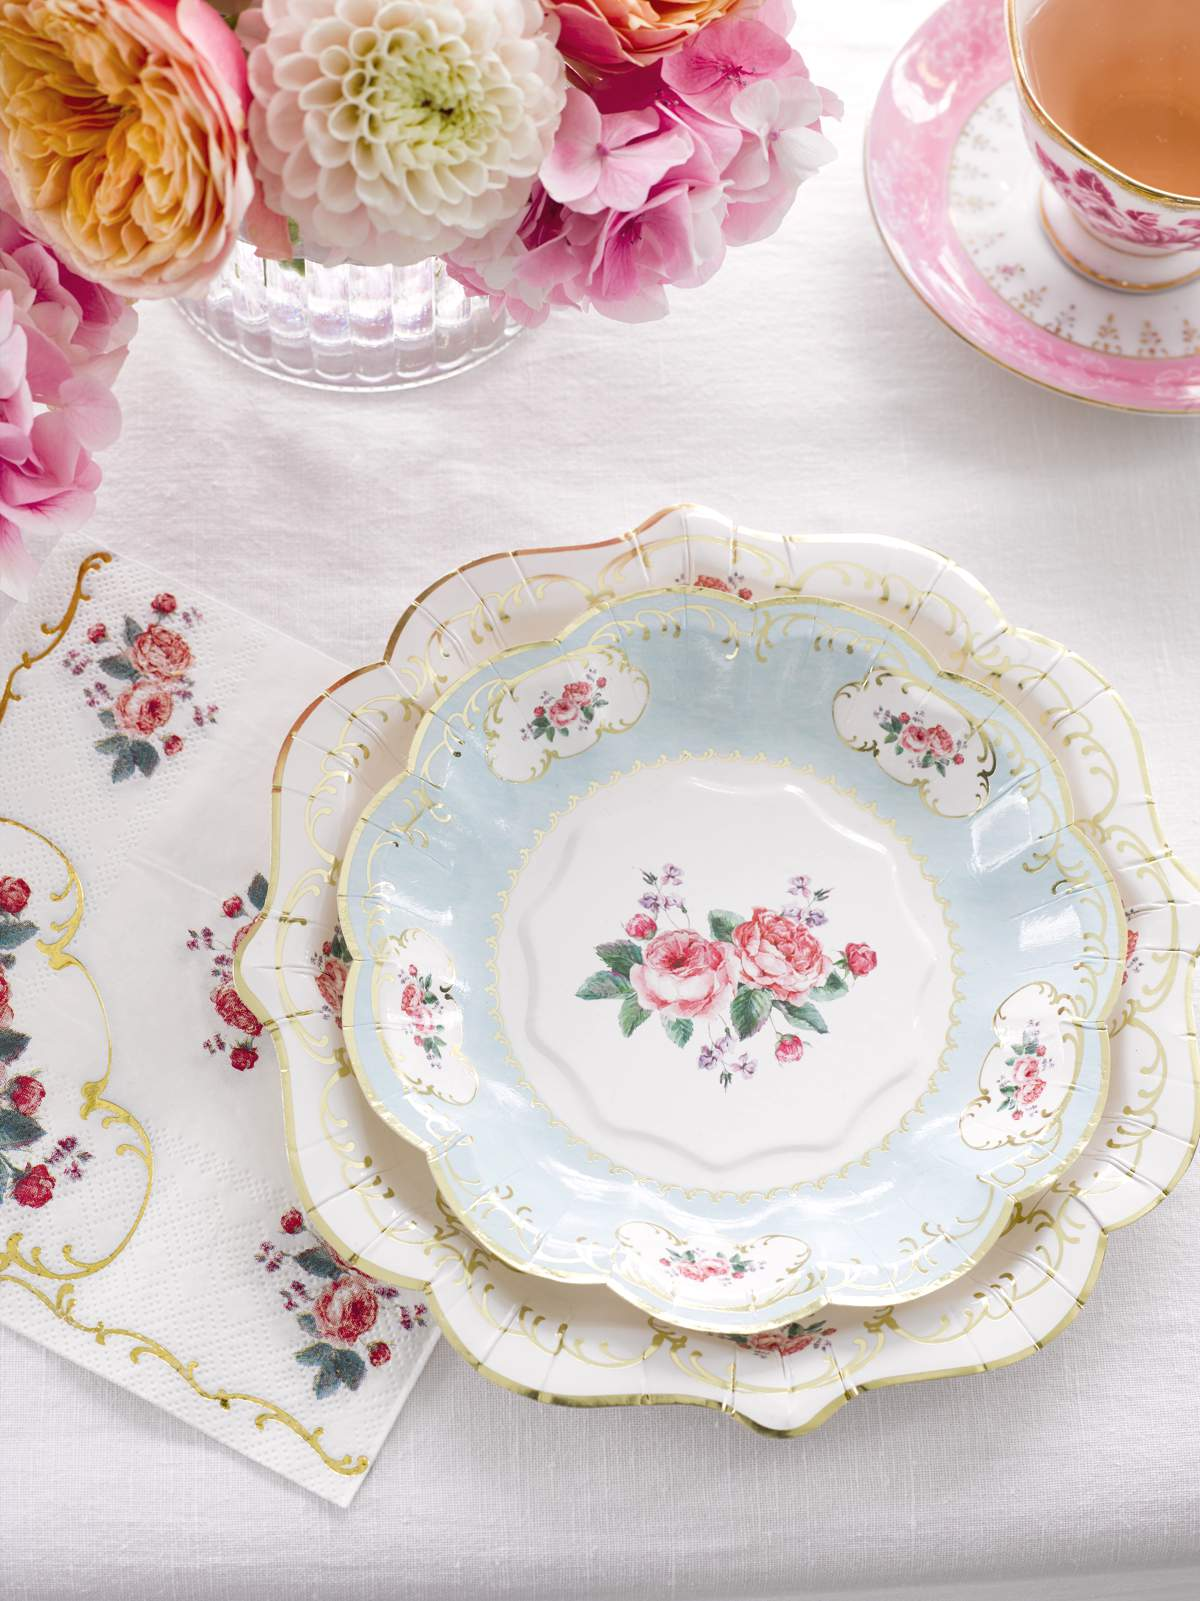 LIFESTYLE Talking Tables Truly Chintz Table Setting Detail Medium And Small Plates Napkin Lifestyle